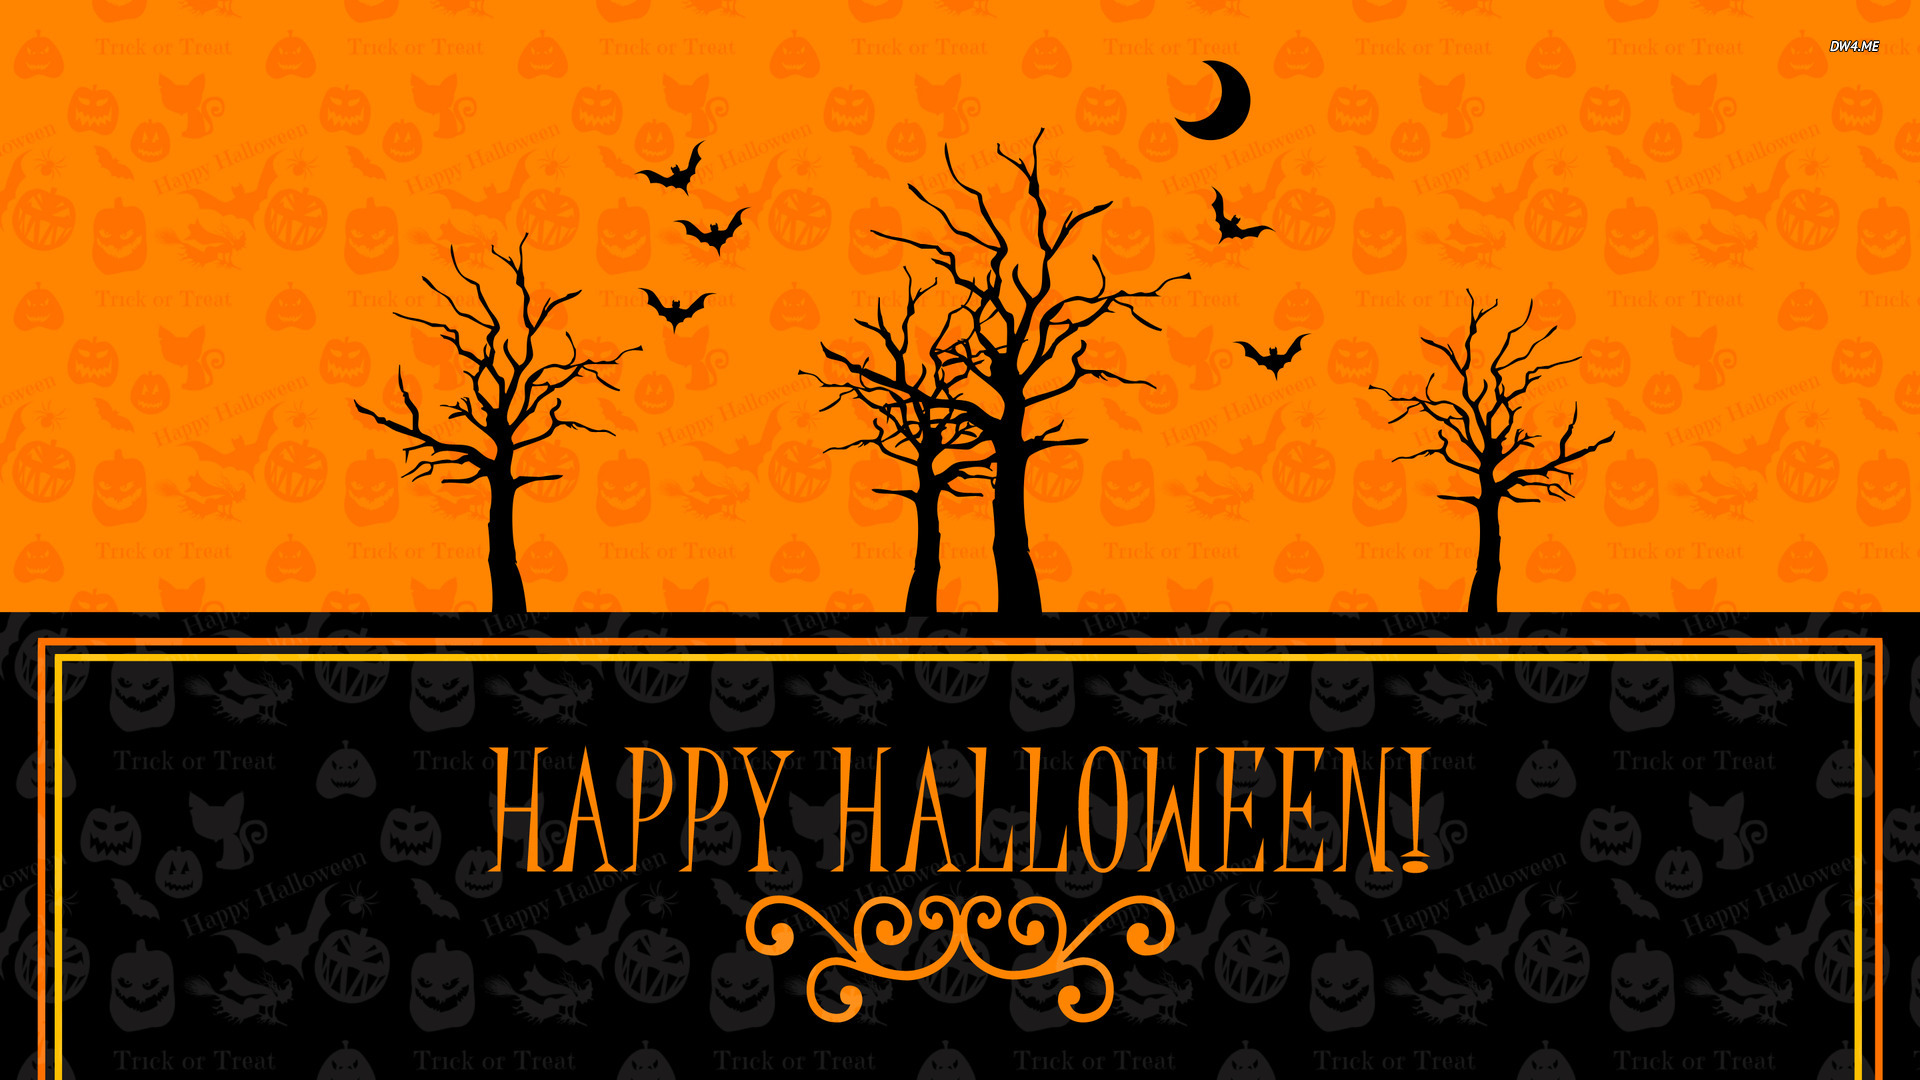 Happy Halloween from KBIConstruction